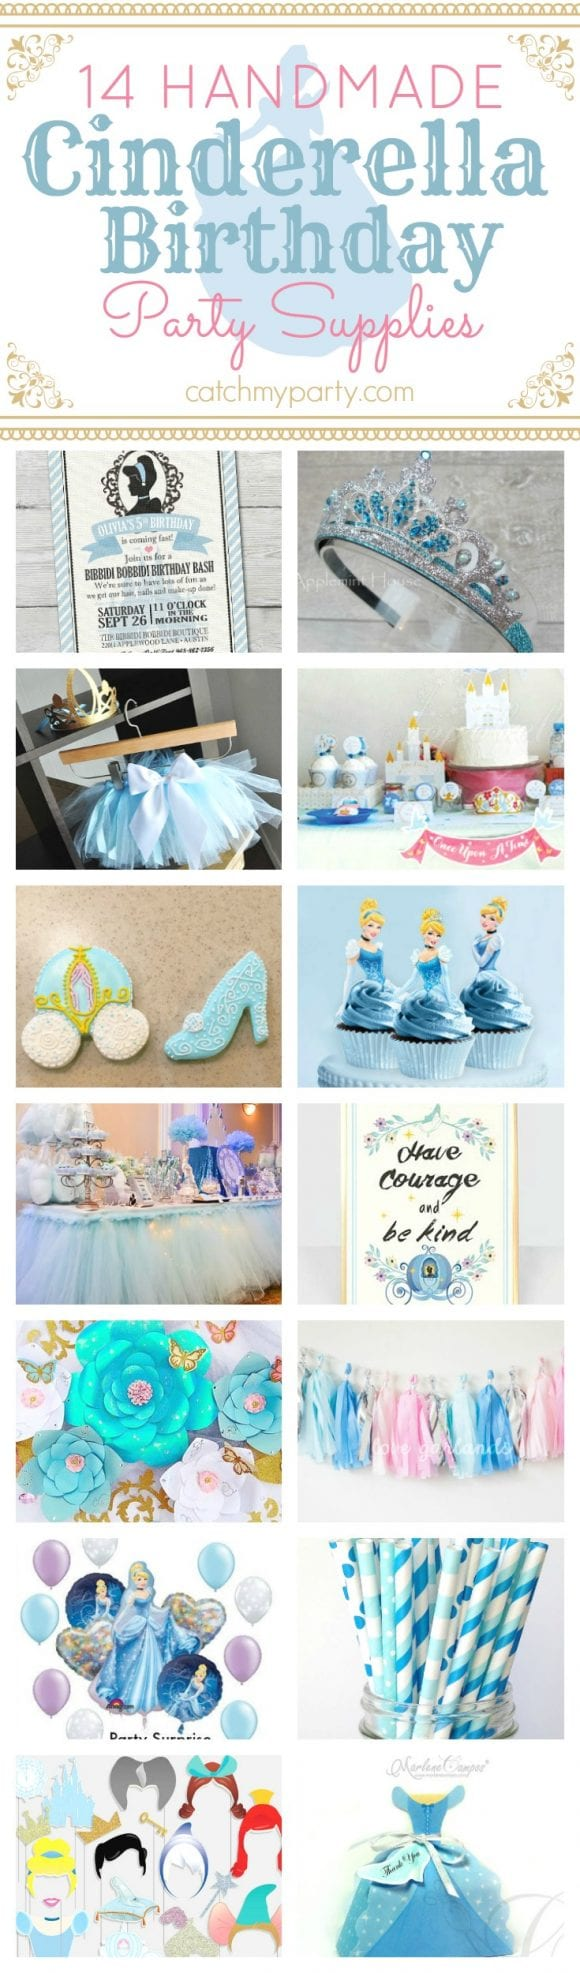 14 Handmade Cinderella birthday party supplies | CatchMyparty.com